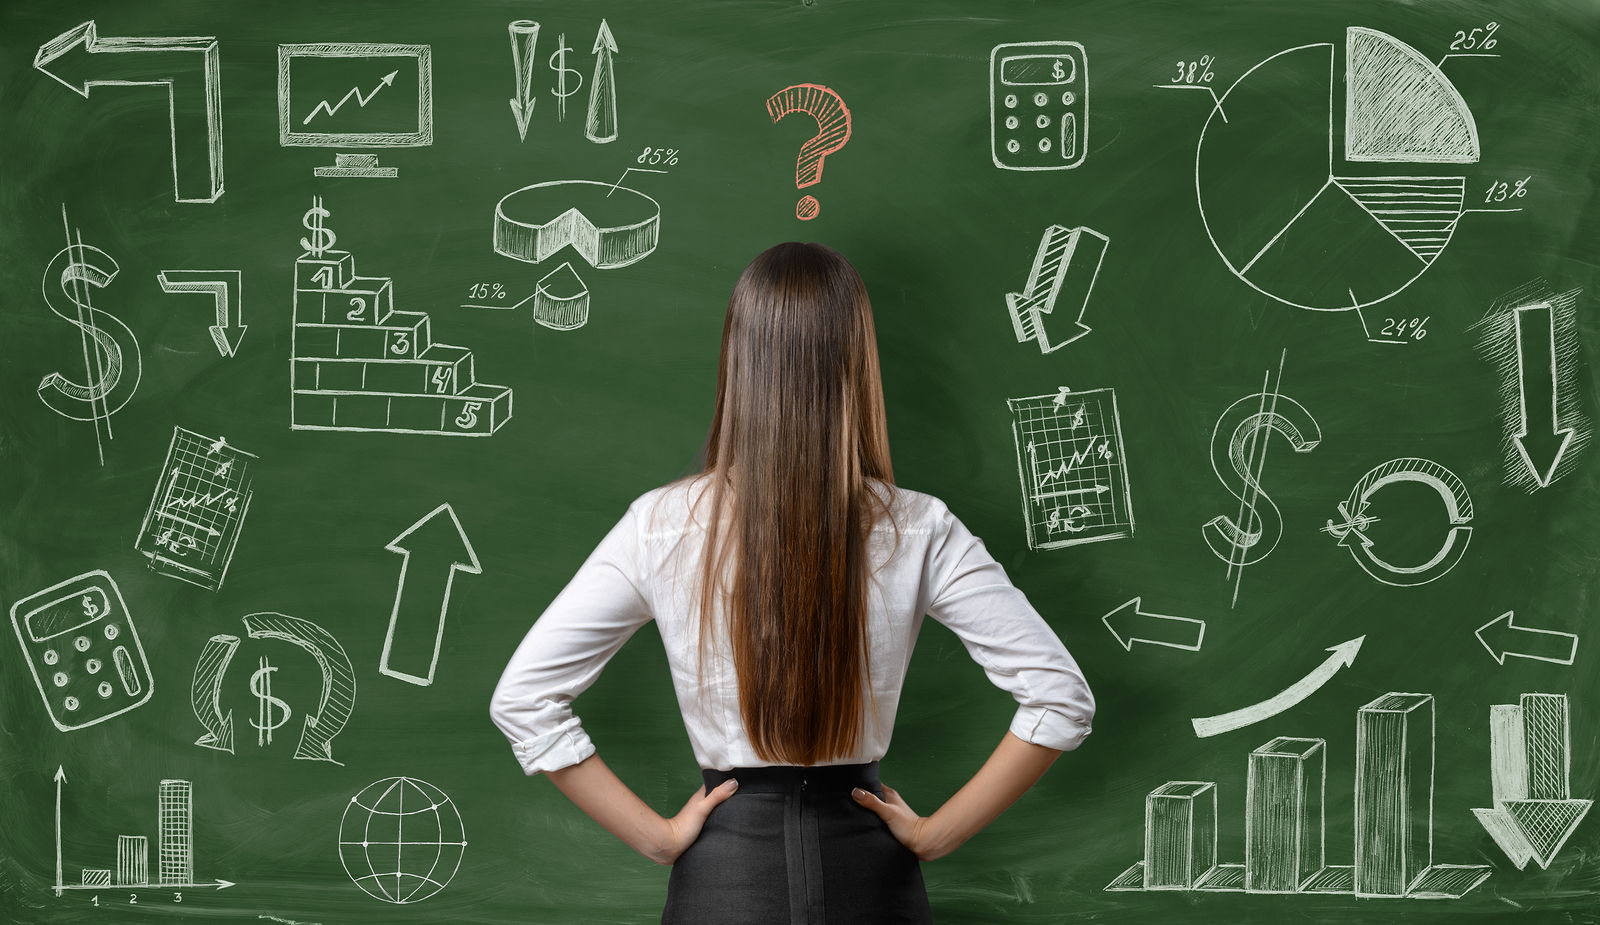 looking at chalk board analysis for buying a home sight unseen